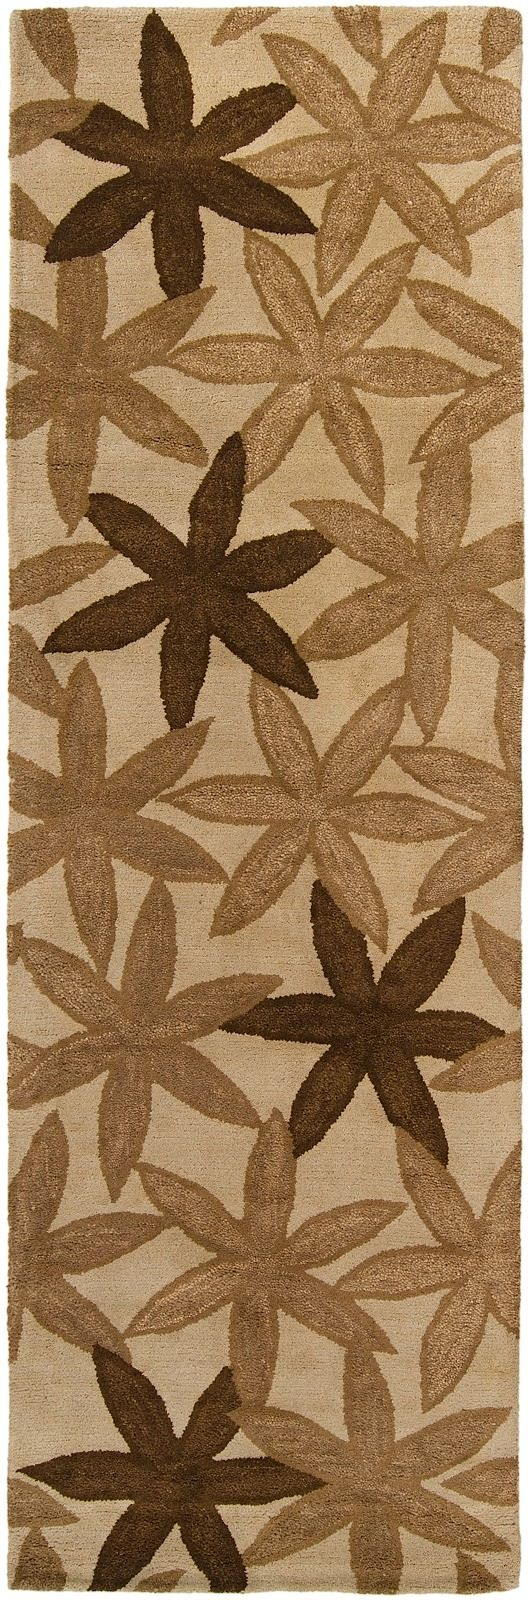 surya legion transitional area rug collection